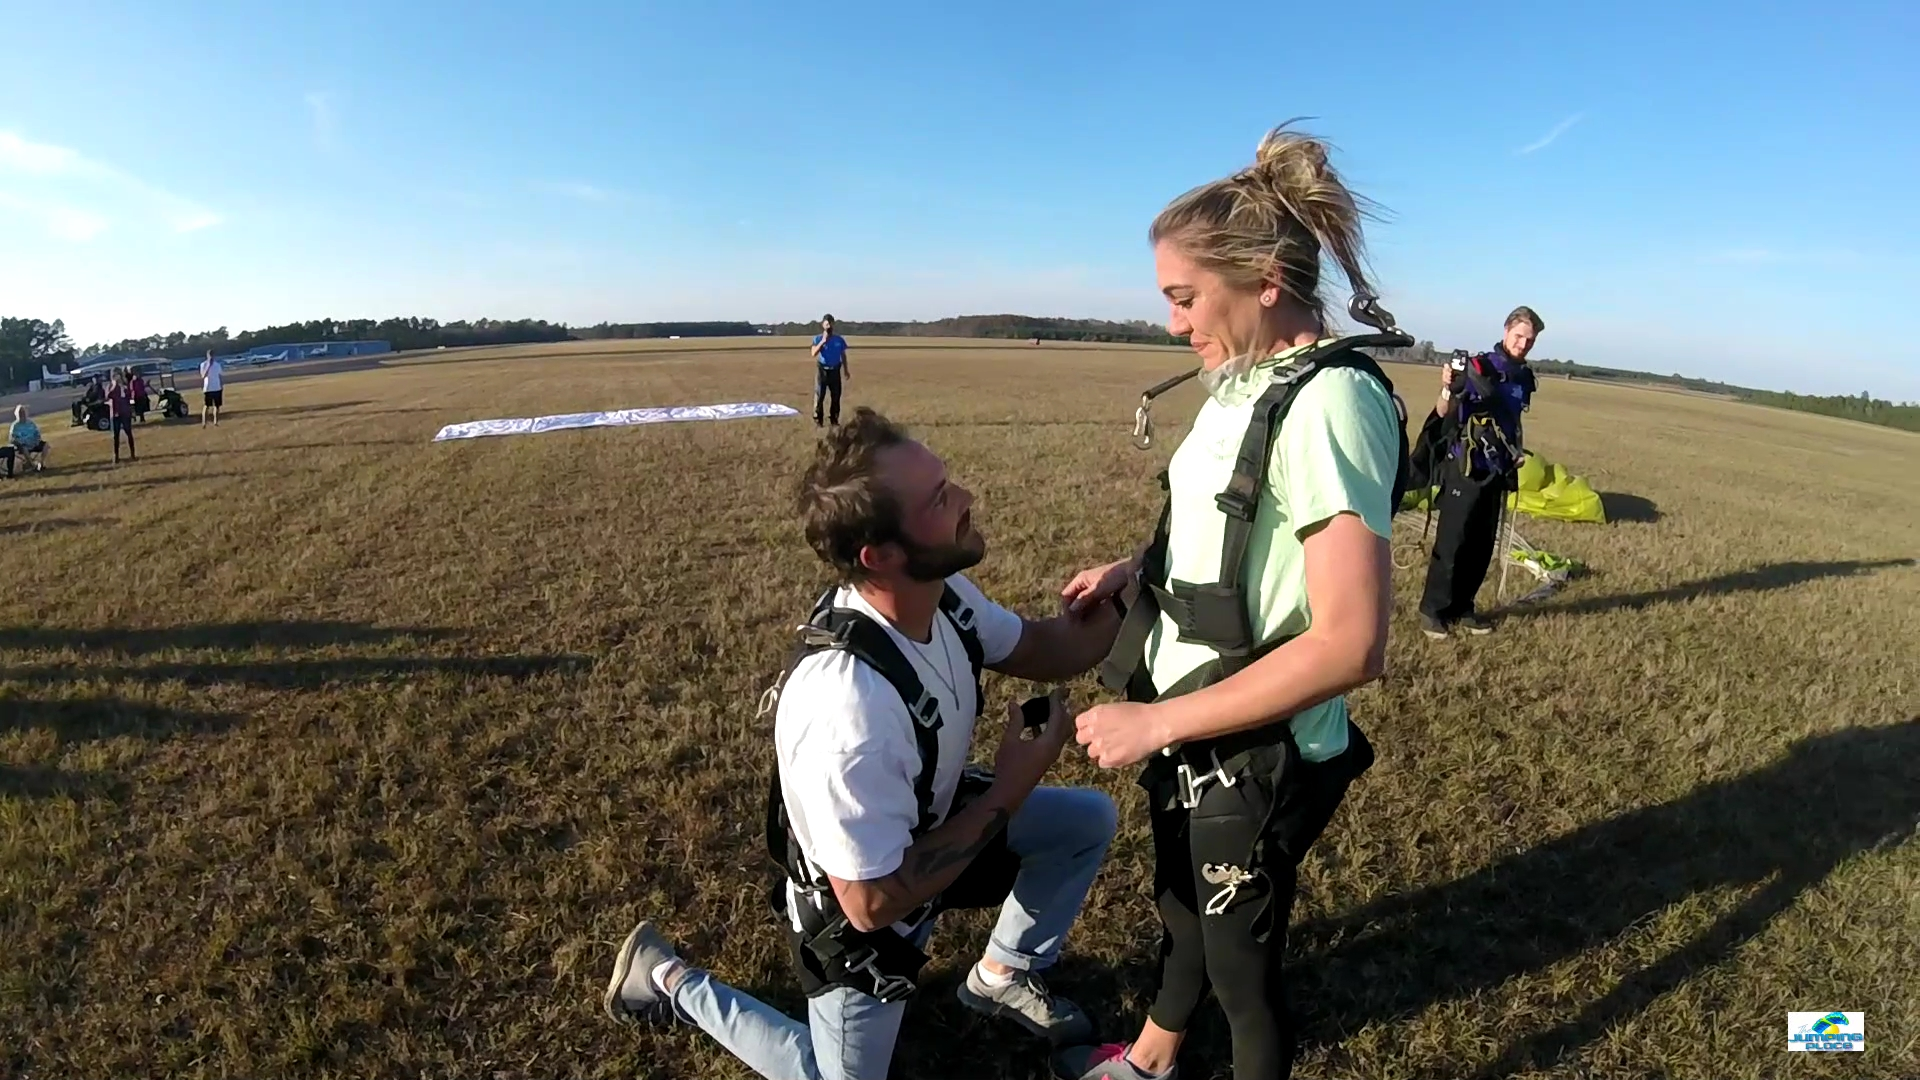 awesome engagement ideas jumping place skydiving center proposals